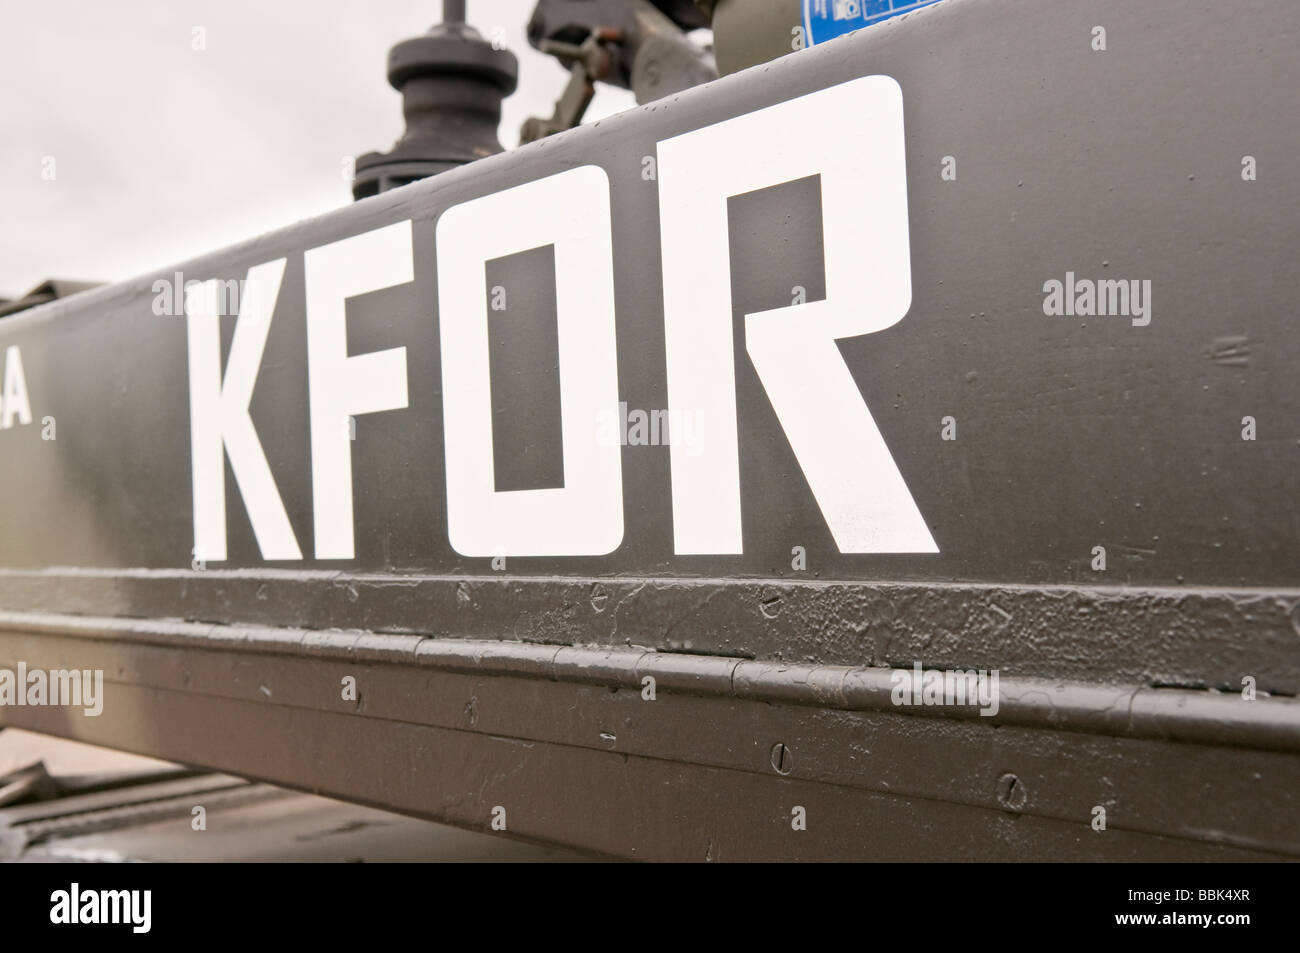 KFOR (Kosovo Force) on the side of a British Army Sabre tank - Stock Image